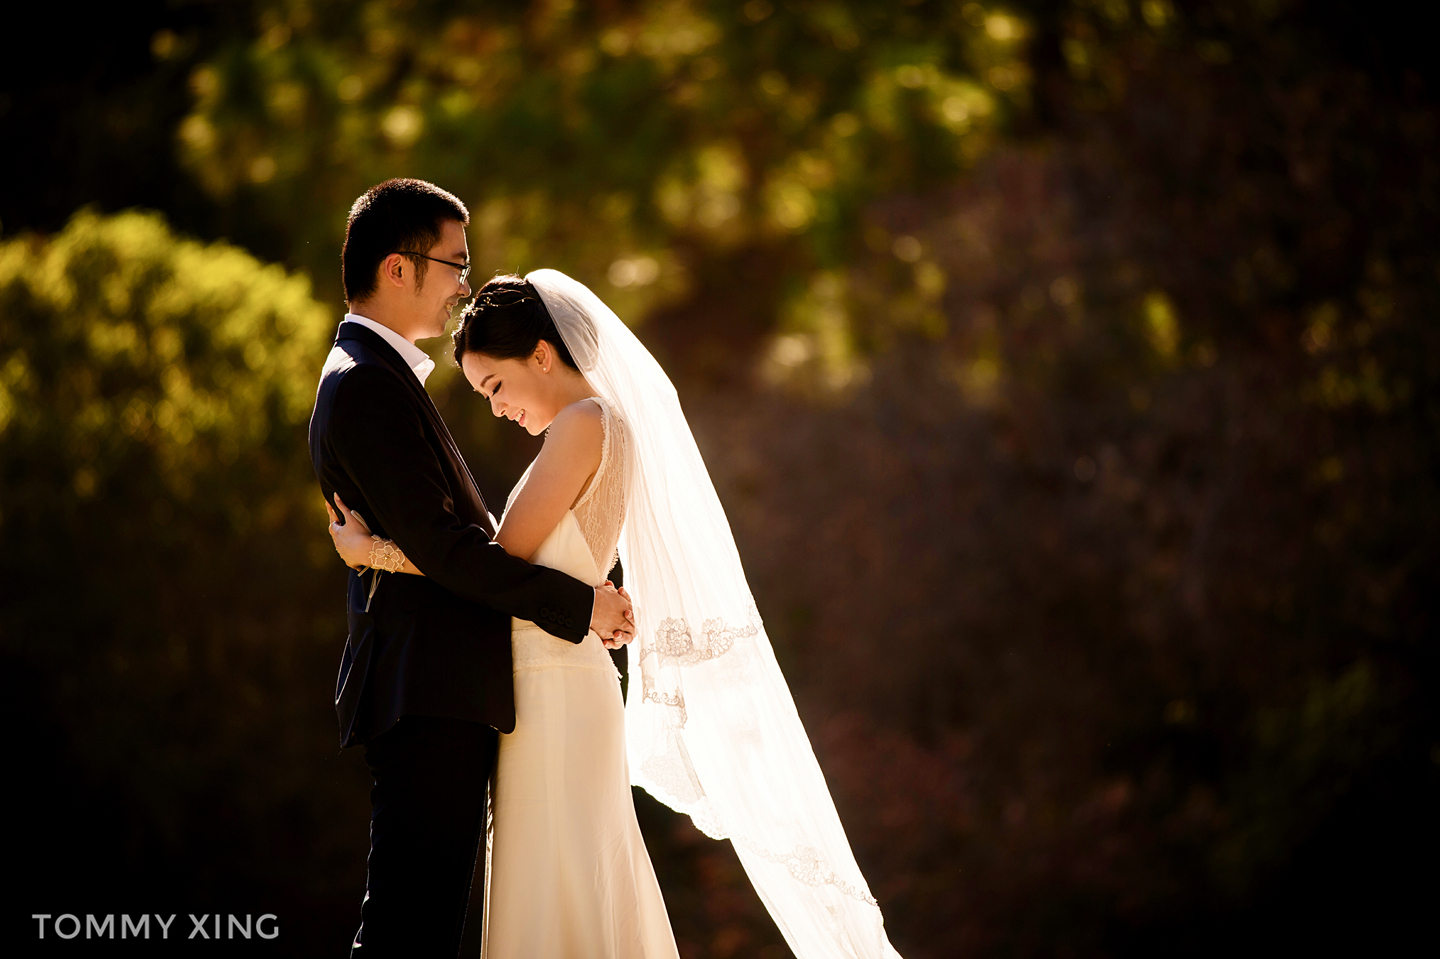 Los Angeles per-wedding 洛杉矶婚纱照 by Tommy Xing Photography 10.jpg